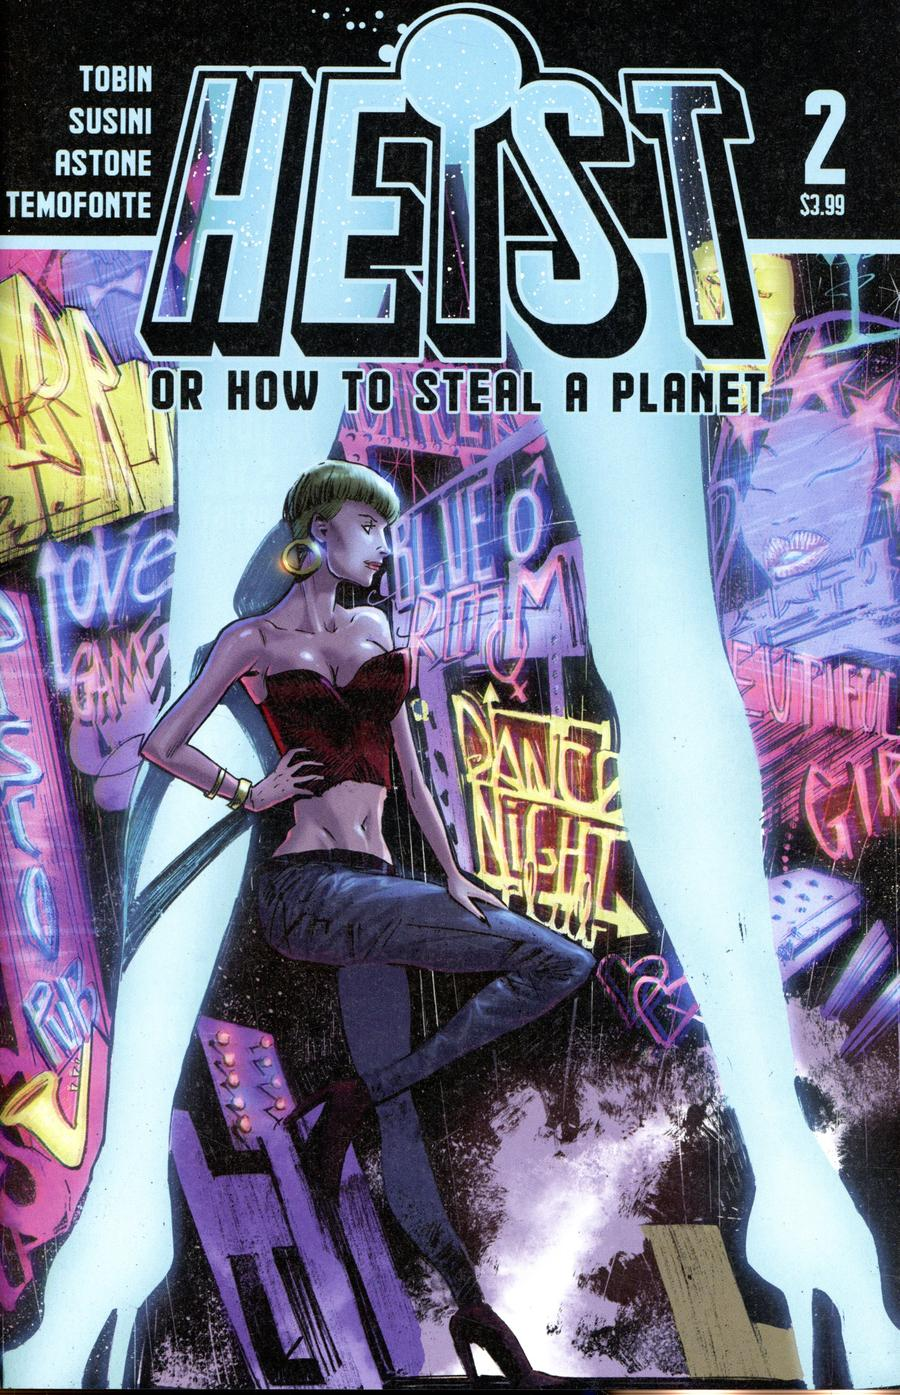 Heist Or How To Steal A Planet #2